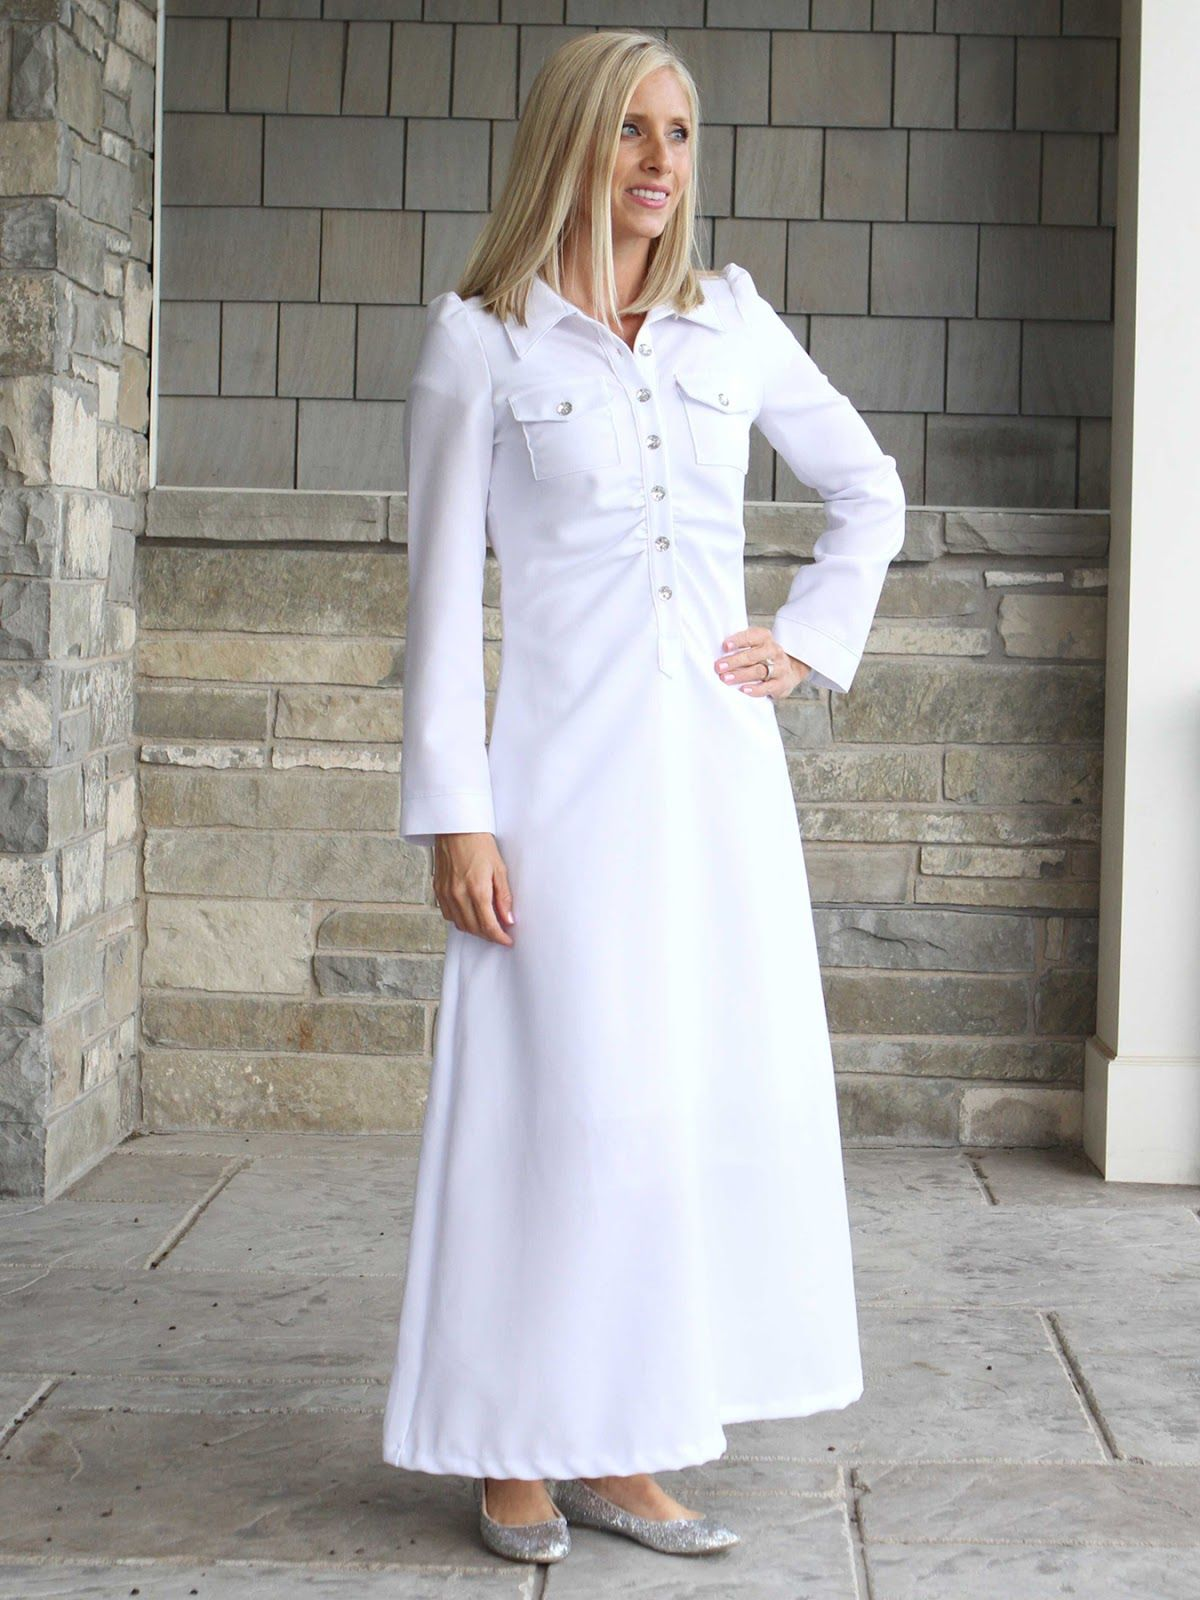 A Temple Dress For Every Body Type Mormon Inspire Lds Temple Dress Temple Dress Dresses [ 1600 x 1200 Pixel ]